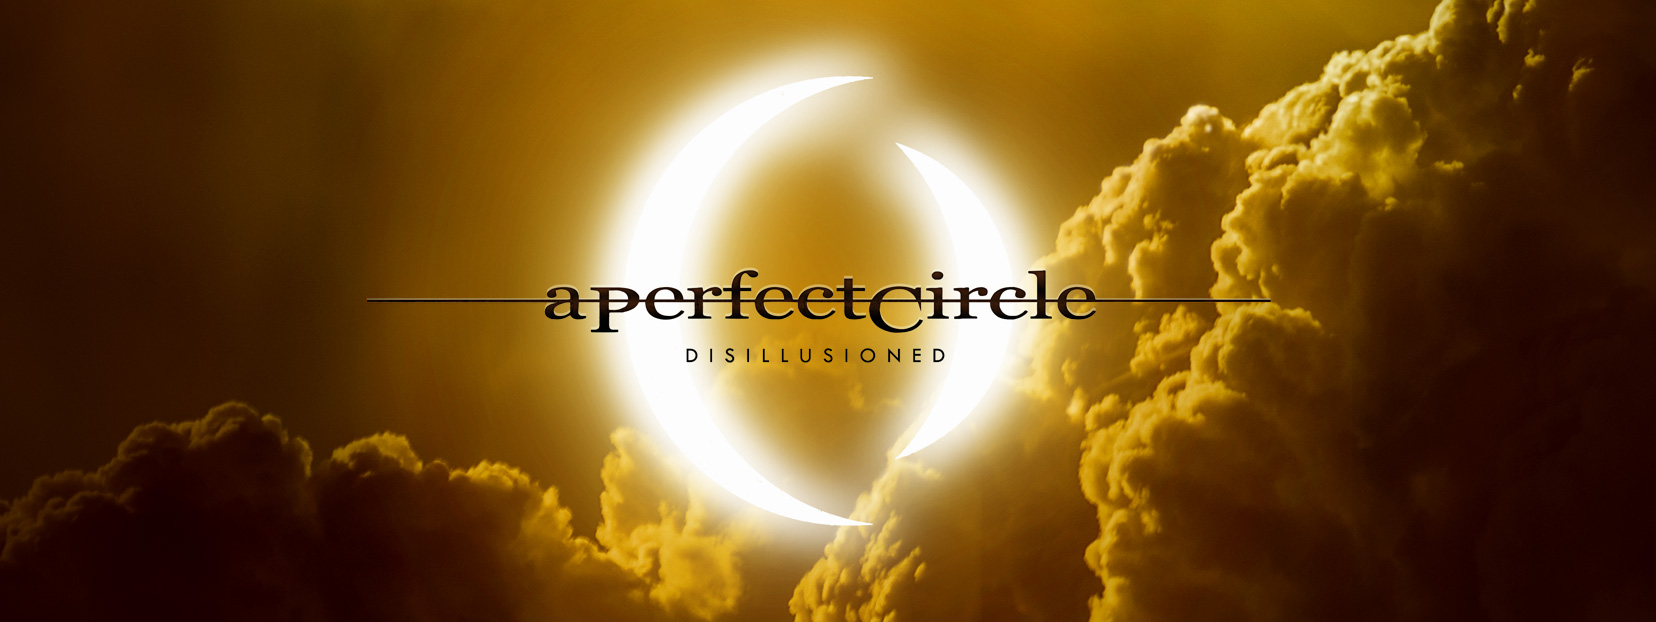 A Perfect Circle Disillusioned cover, A Perfect Circle, A Perfect Circle band, Billy Howerdel , Maynard James Keenan, Matt McJunkins, James Iha, Tool, Puscifer, Mer De Noms, Thirteen Step, Three Sixty, eMOTIVe, aMOTION, By And Down, A Perfect Circle Live: Featuring Stone and Echo, alternative metal, alternative rock, hard rock, sickandsound, artist reviews, new song review, listen to A Perfect Circle latest song, A Perfect Circle latest song review, The Doomed, BMG Rights Management, Stream A Perfect Circle Disillusioned, A Perfect Circle Disillusioned, A Perfect Circle Disillusioned recensione, A Perfect Circle Disillusioned review